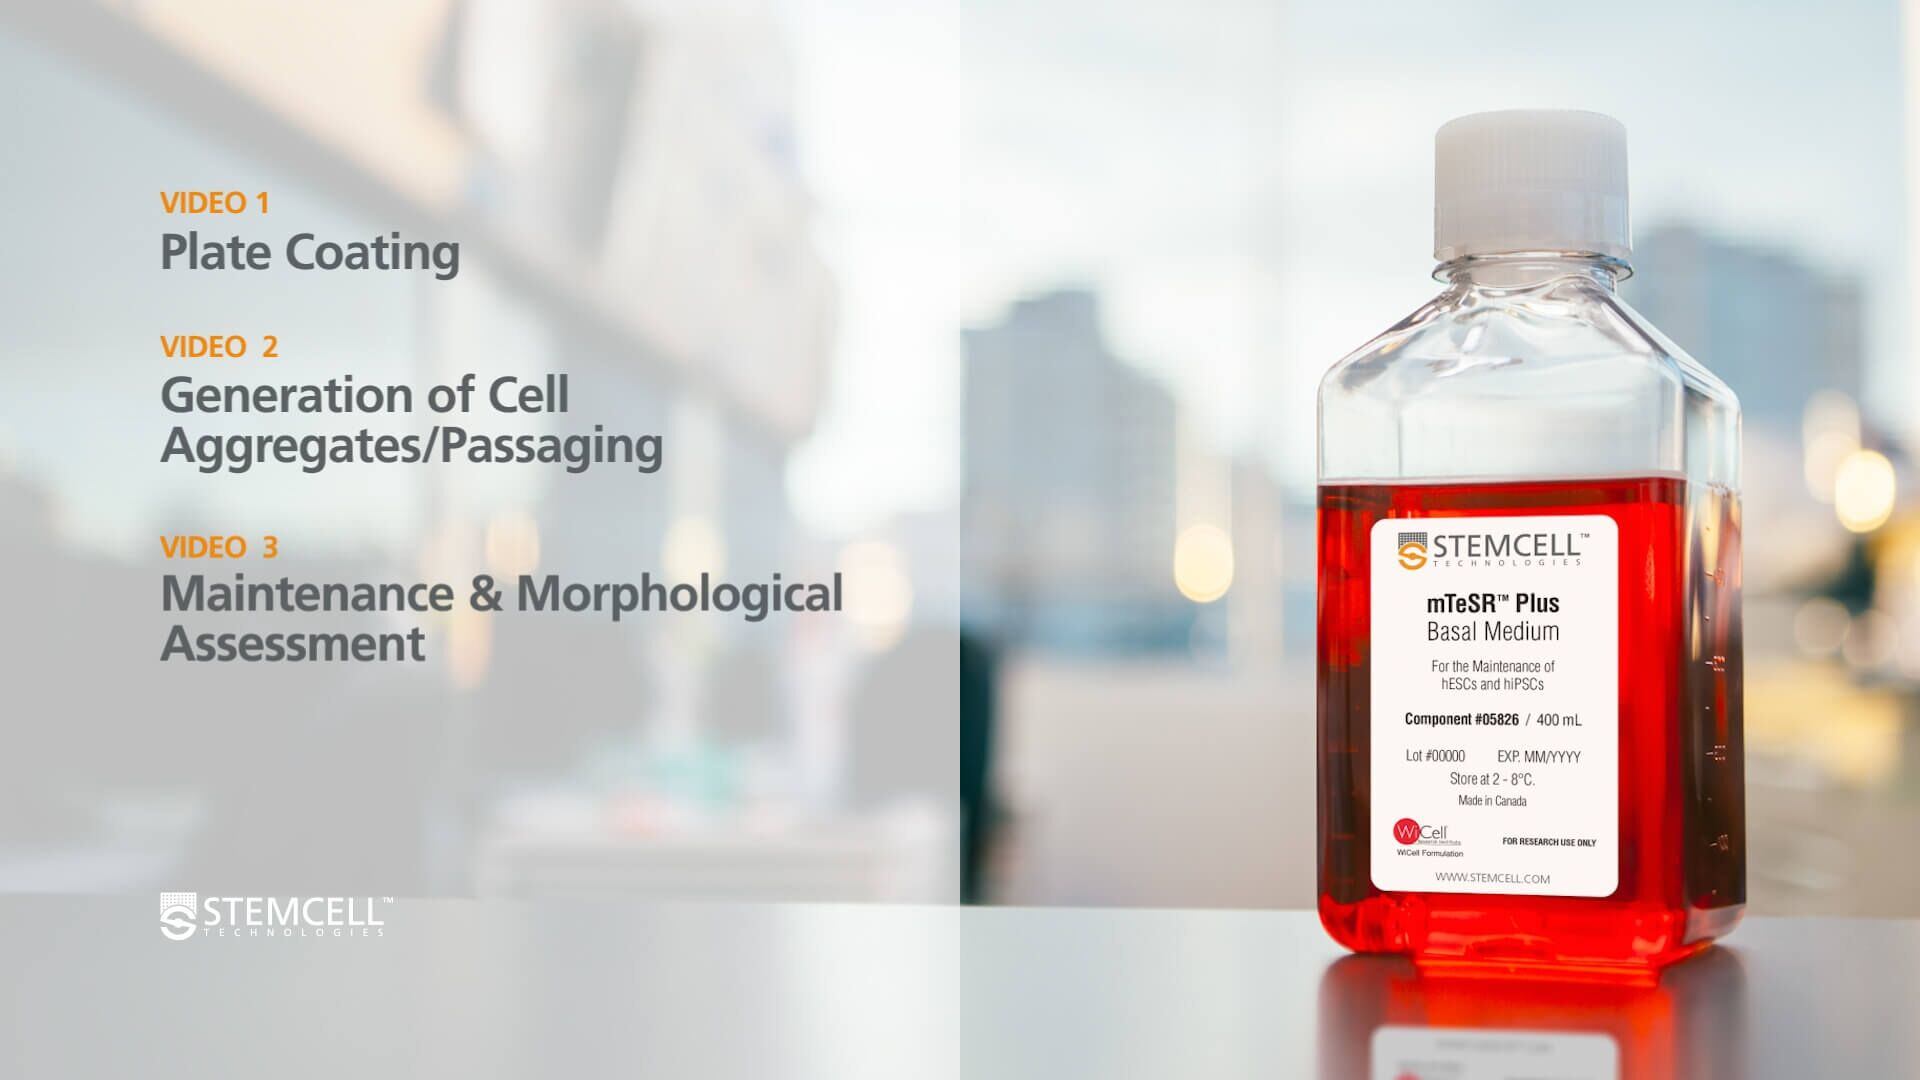 How to Transition Human Pluripotent Stem Cells into mTeSR™ Plus from Other Feeder-Free Media